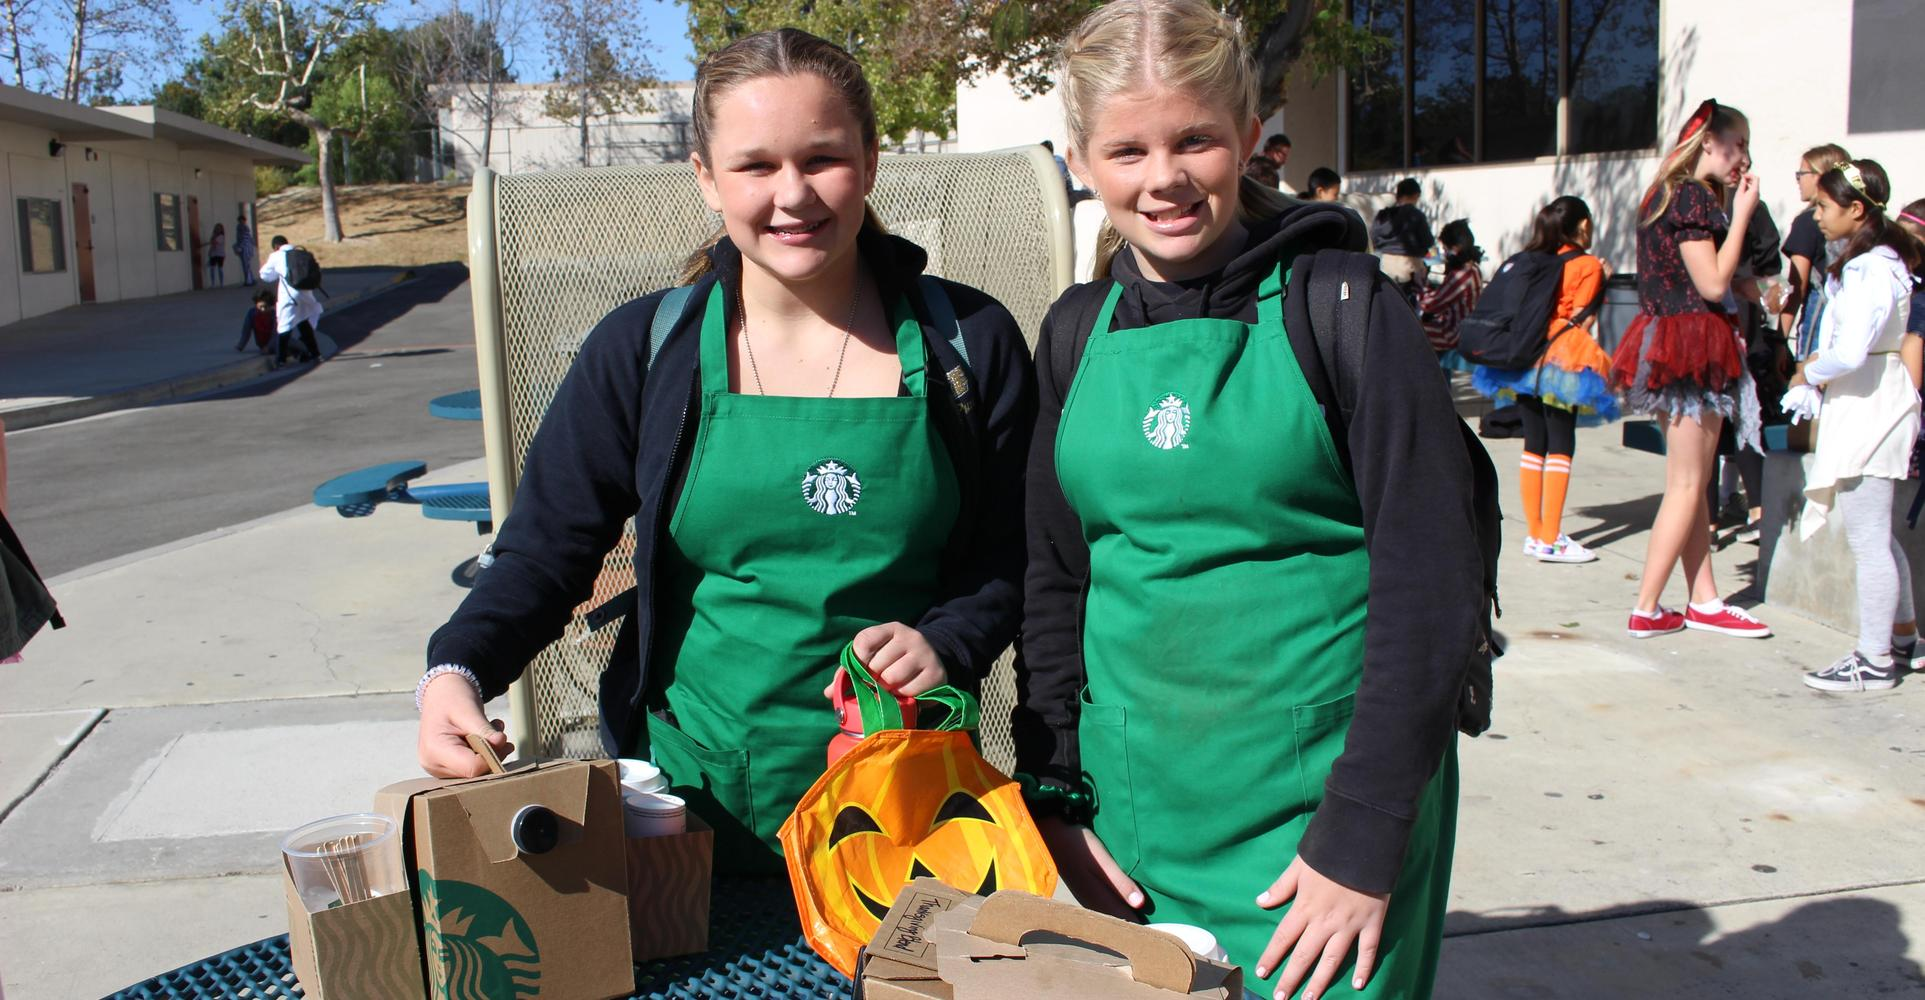 Two students dress as baristas during middle school Halloween